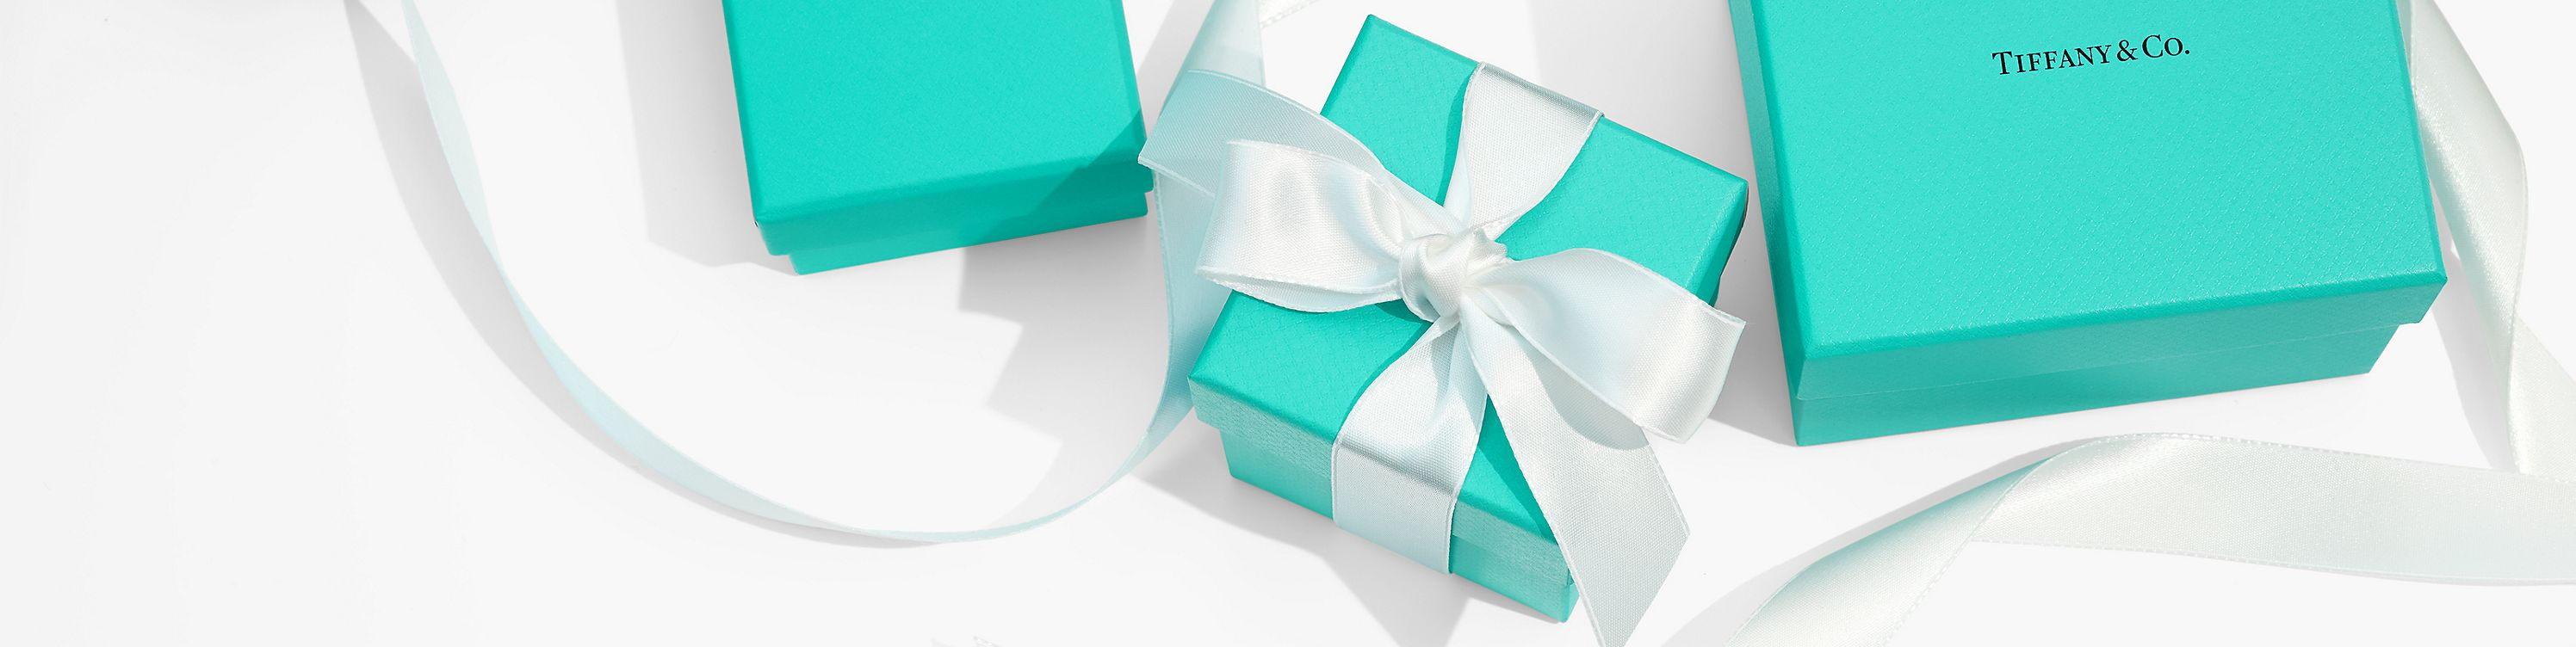 Regalos de Tiffany & Co. de hasta 200 €